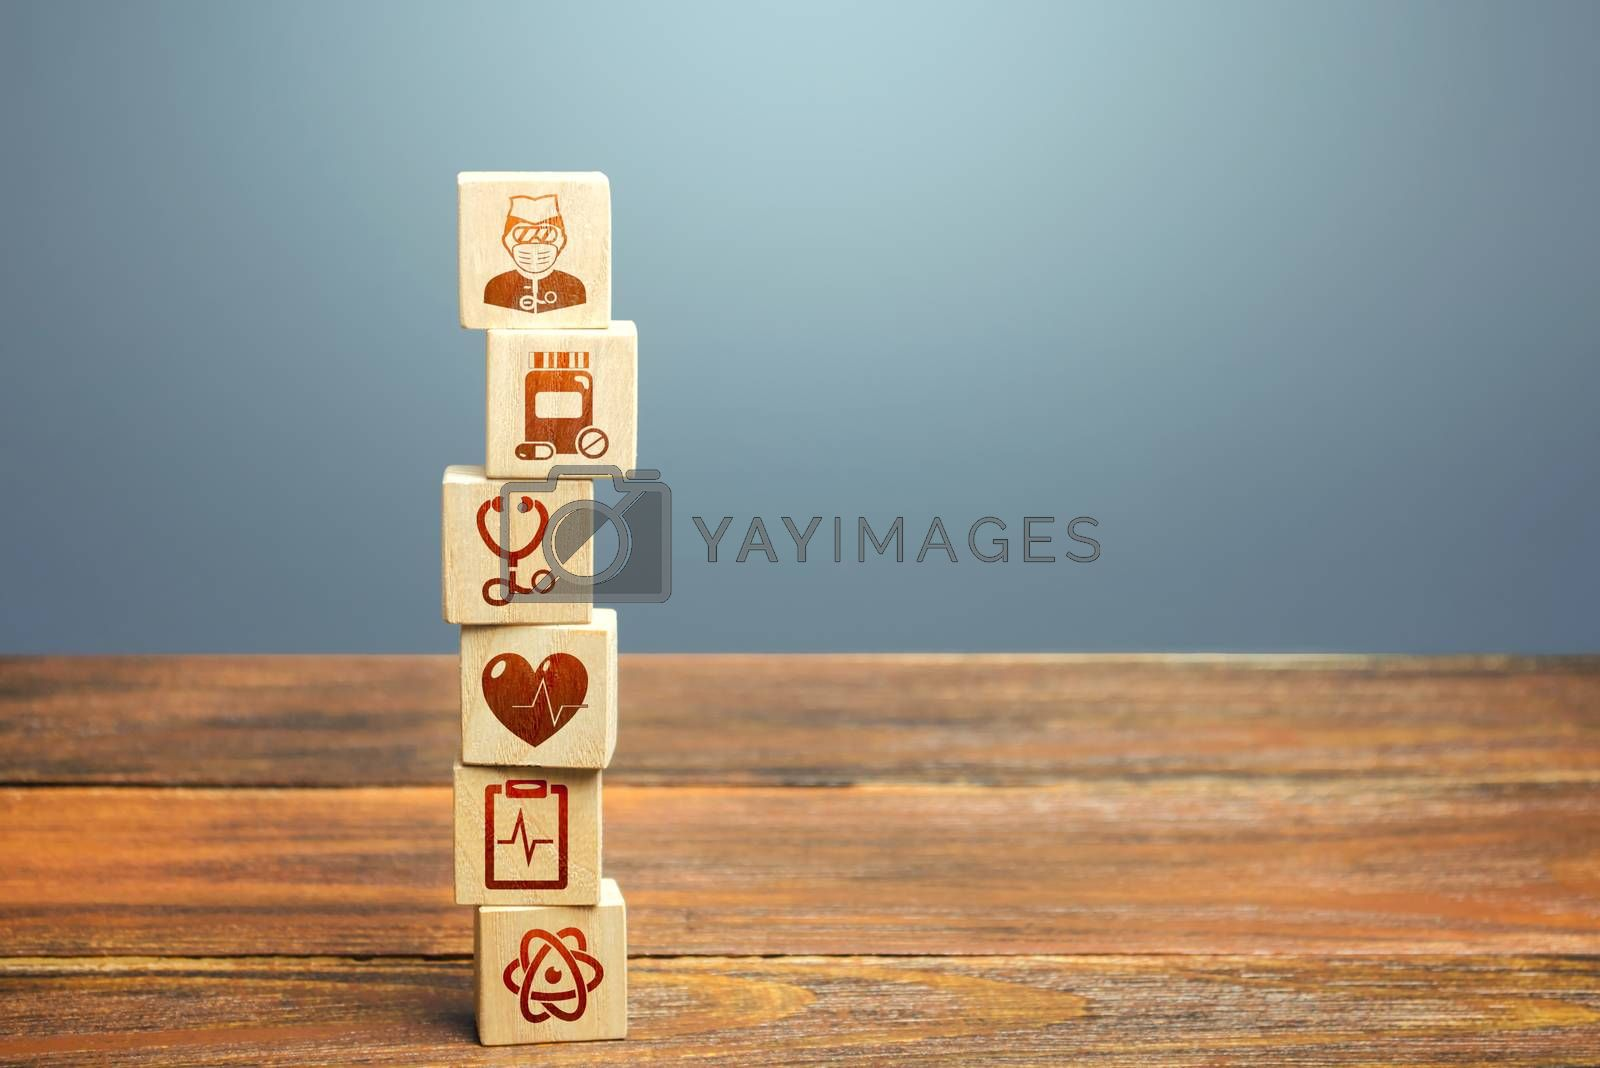 Block tower with medical icons symbols. Healthcare and medical Insurance concept. Supplies, equipment and specialists for the normal functioning of hospitals in the fight against the pandemic.